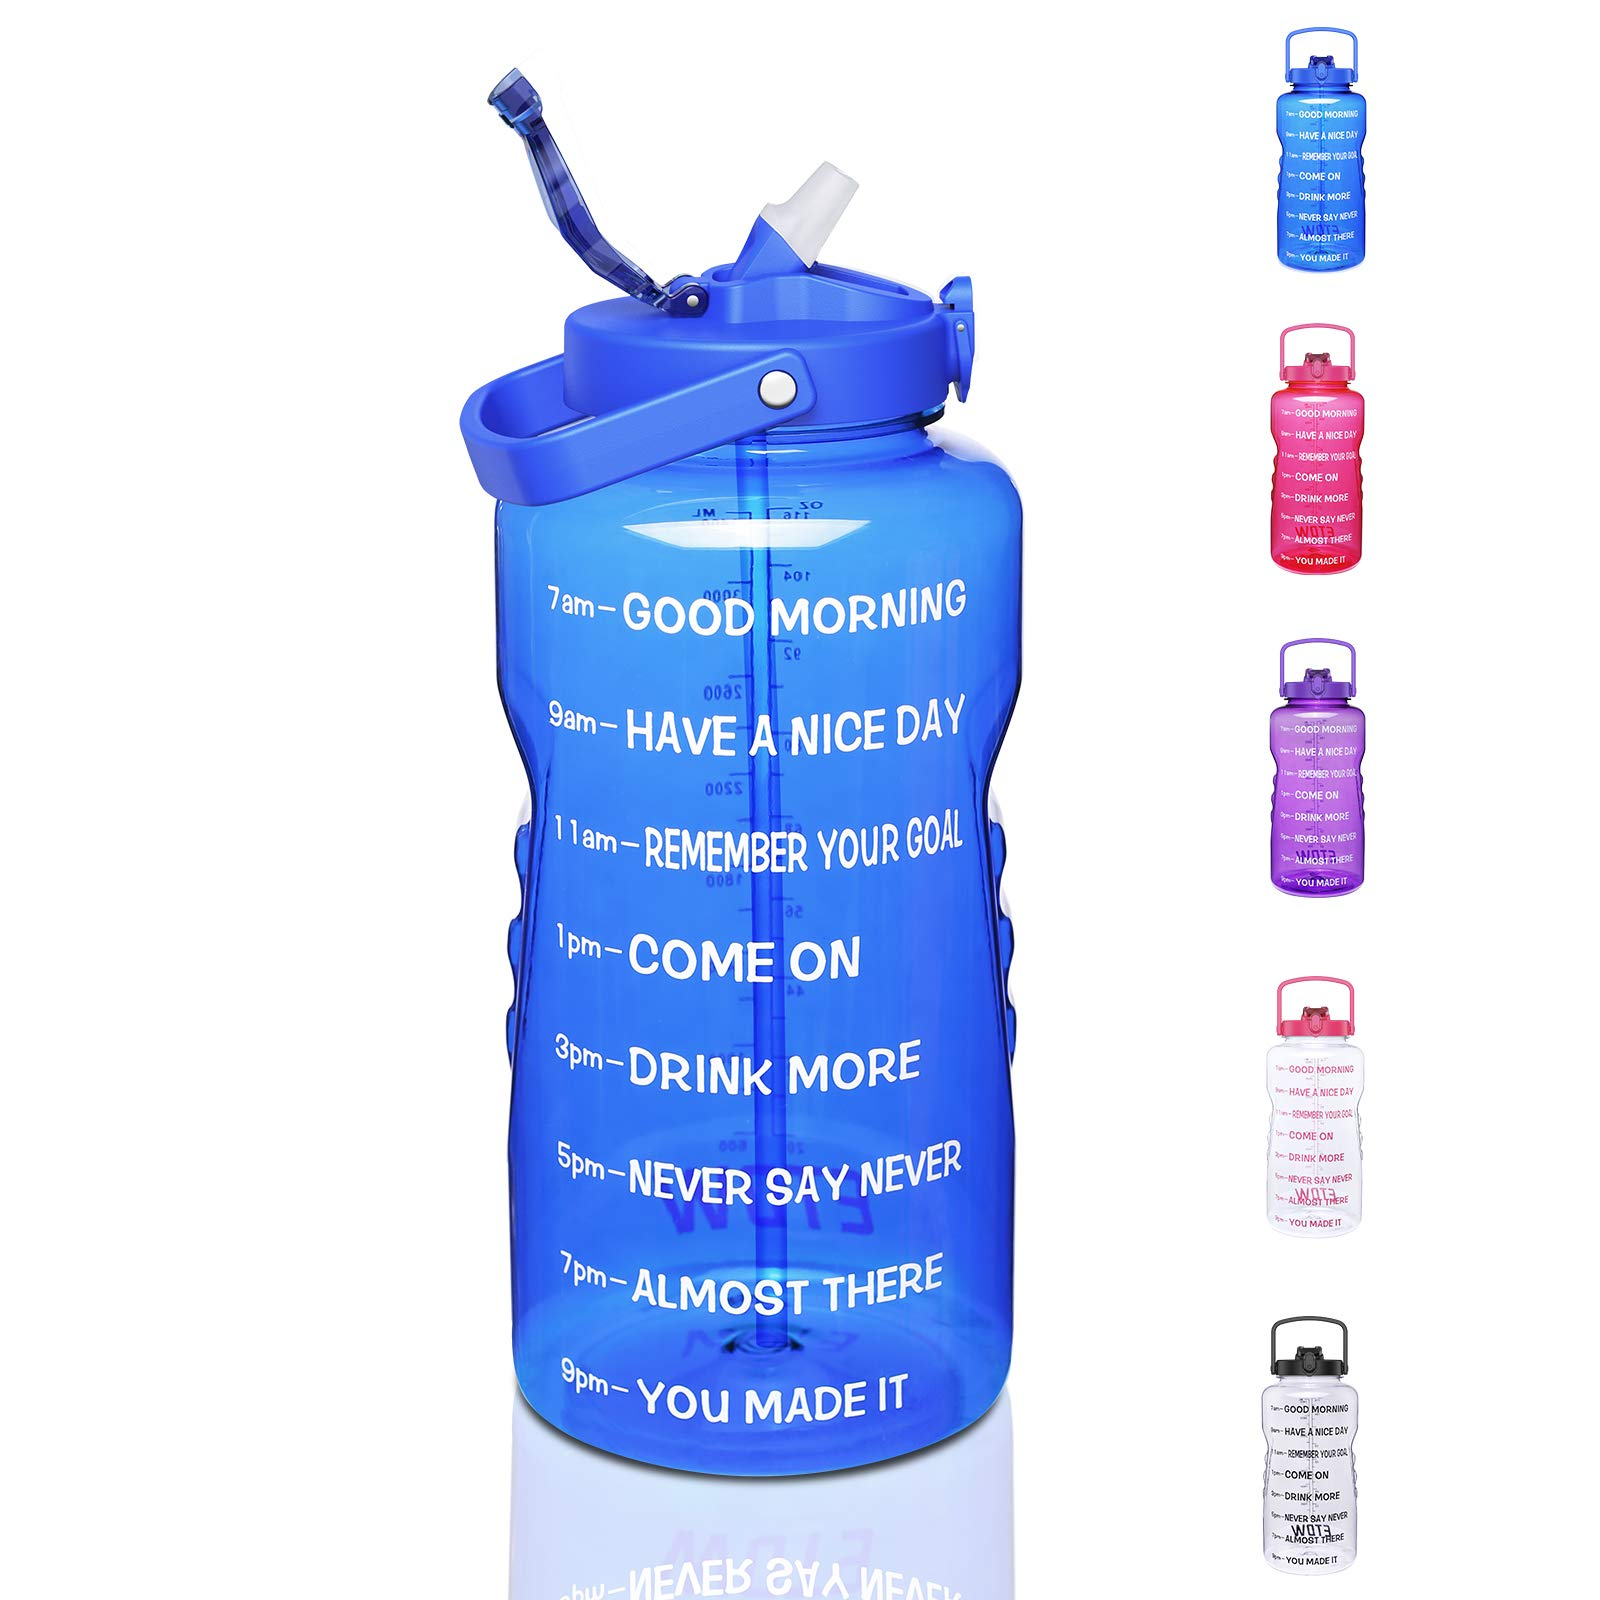 ETDW Water Bottle with Straw 1 Gallon, 128oz Tritan Sport Drinking Bottle with Time Marker and Handle 100% BPA Free, Gallon Water Jug for Daily Hydration